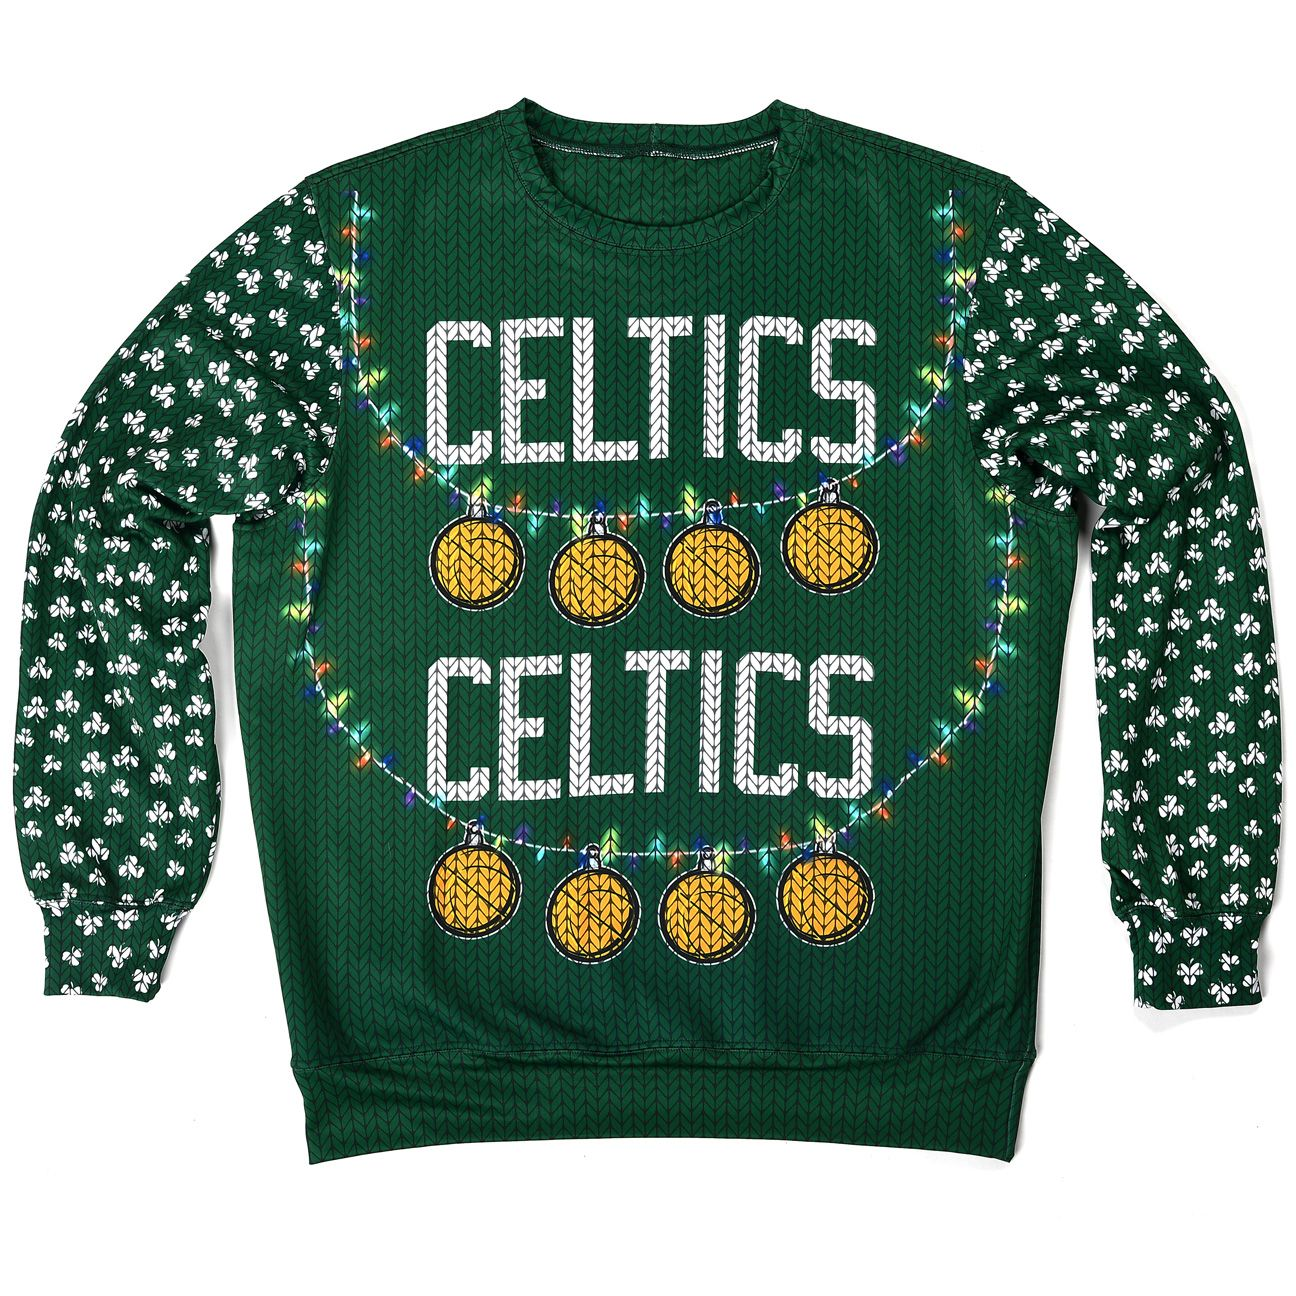 Celtics ugly sweater